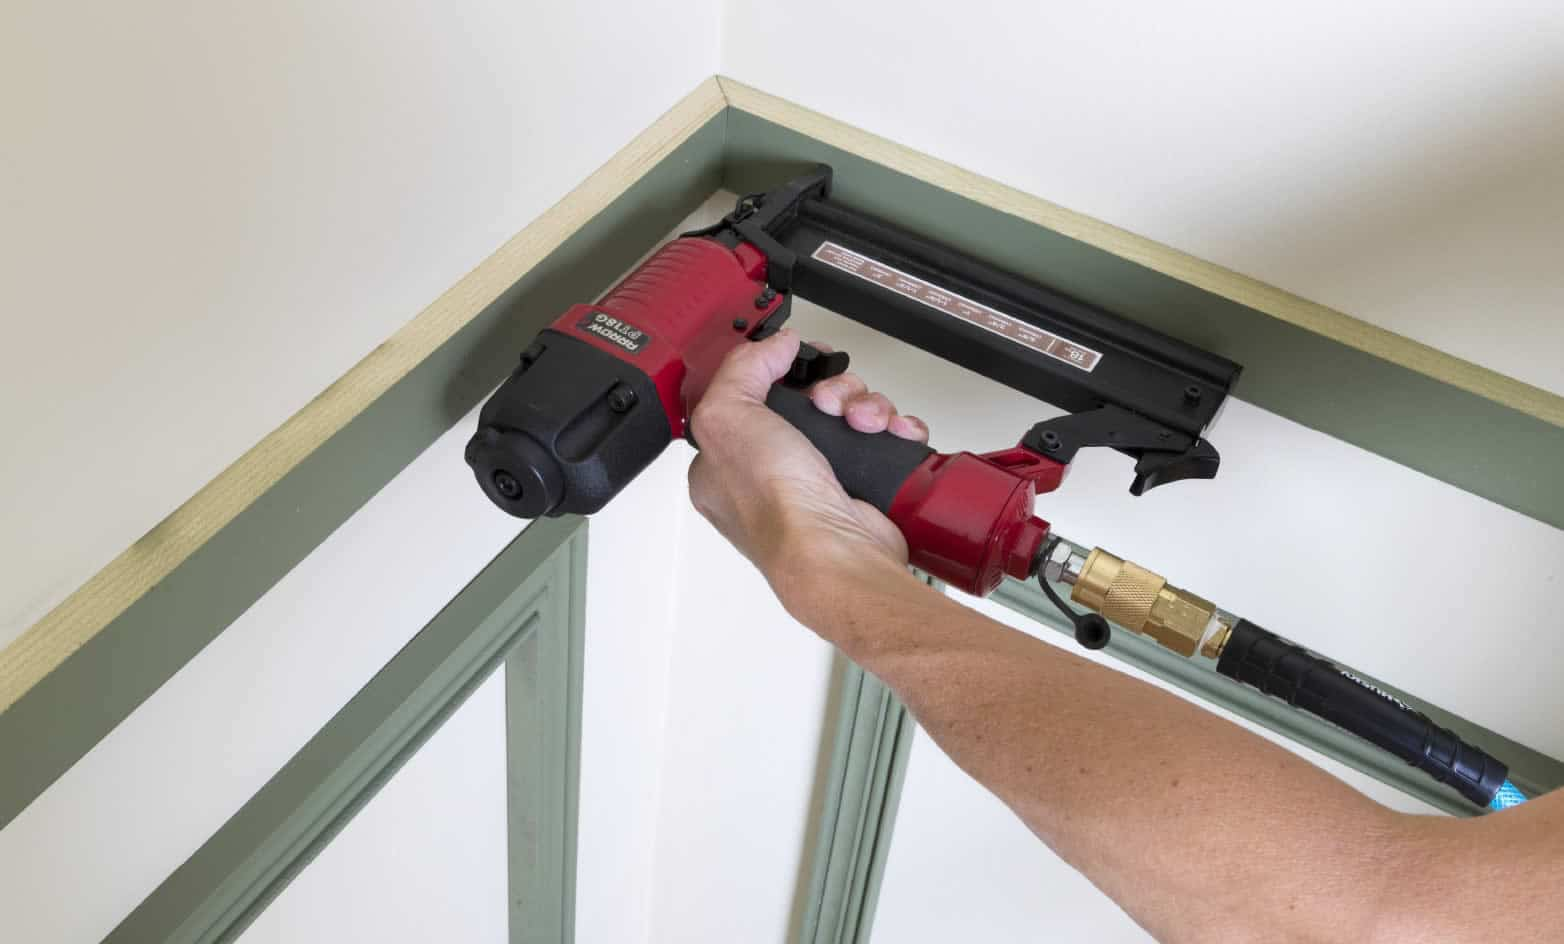 wall-makeover-arrow-project-step6c.jpg